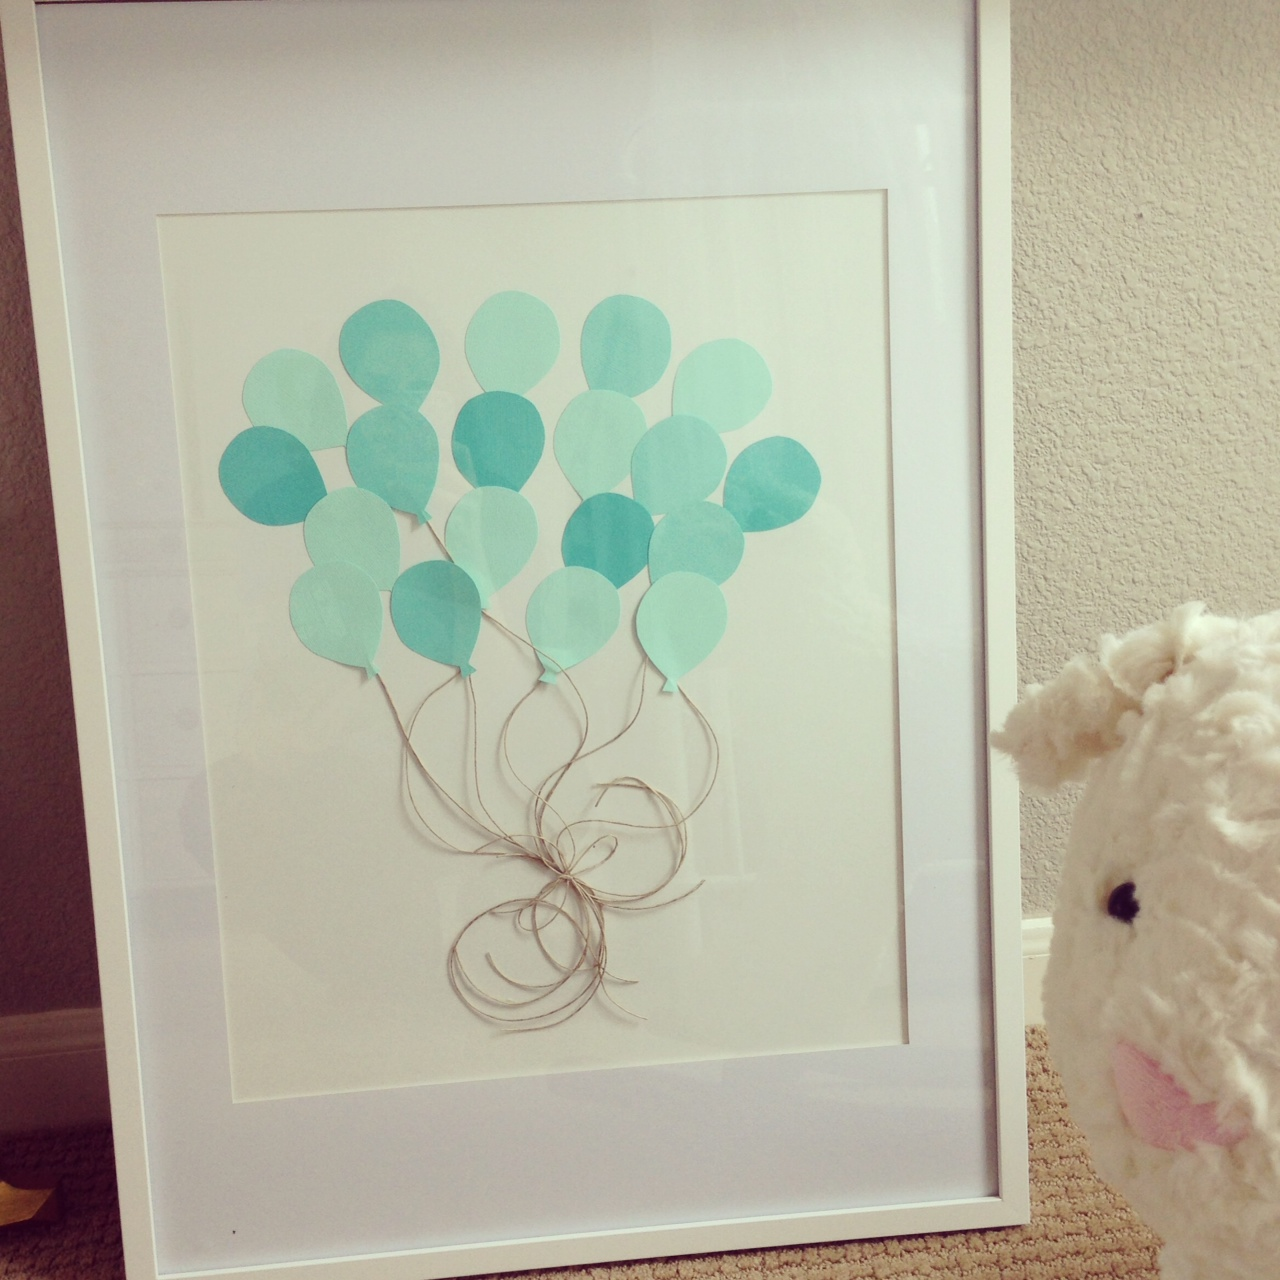 veronika 39 s blushing diy nursery artwork pretty balloons